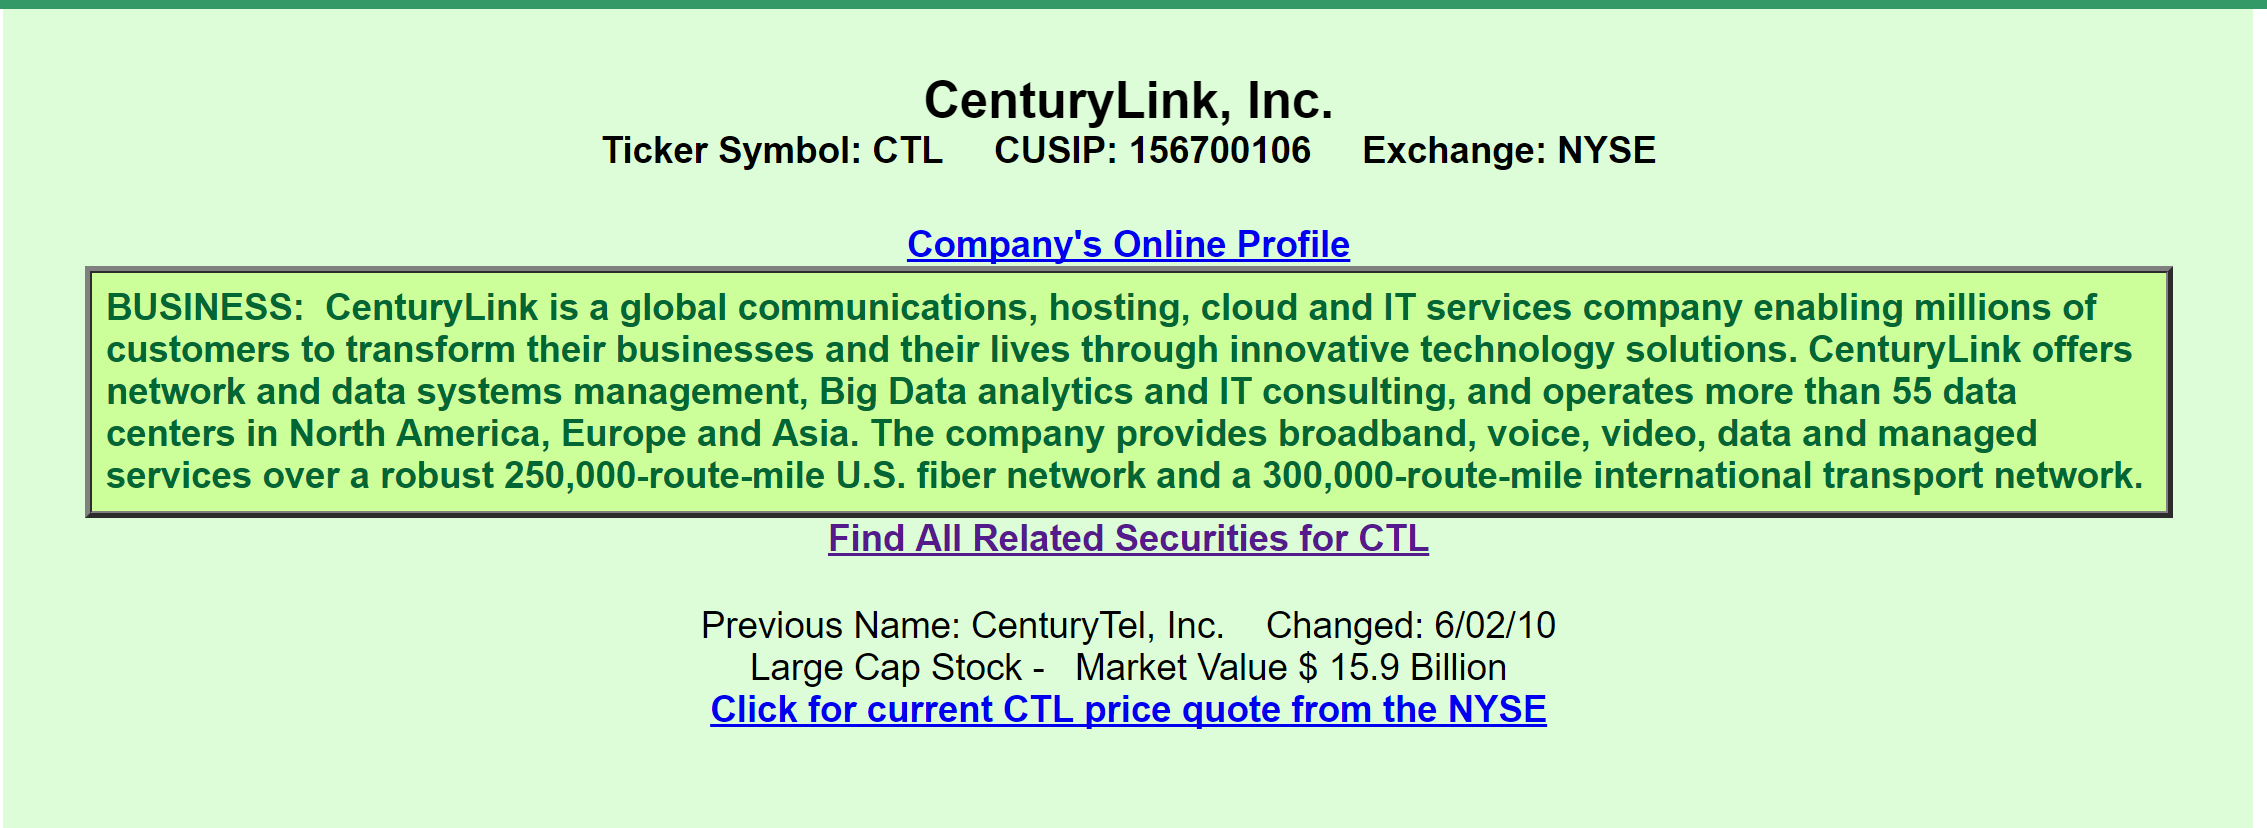 Centurylink a view from the perspective of a preferred and bond a quick review informs us that ctl is a global communications company that provides cloud and it services to millions of customers buycottarizona Image collections